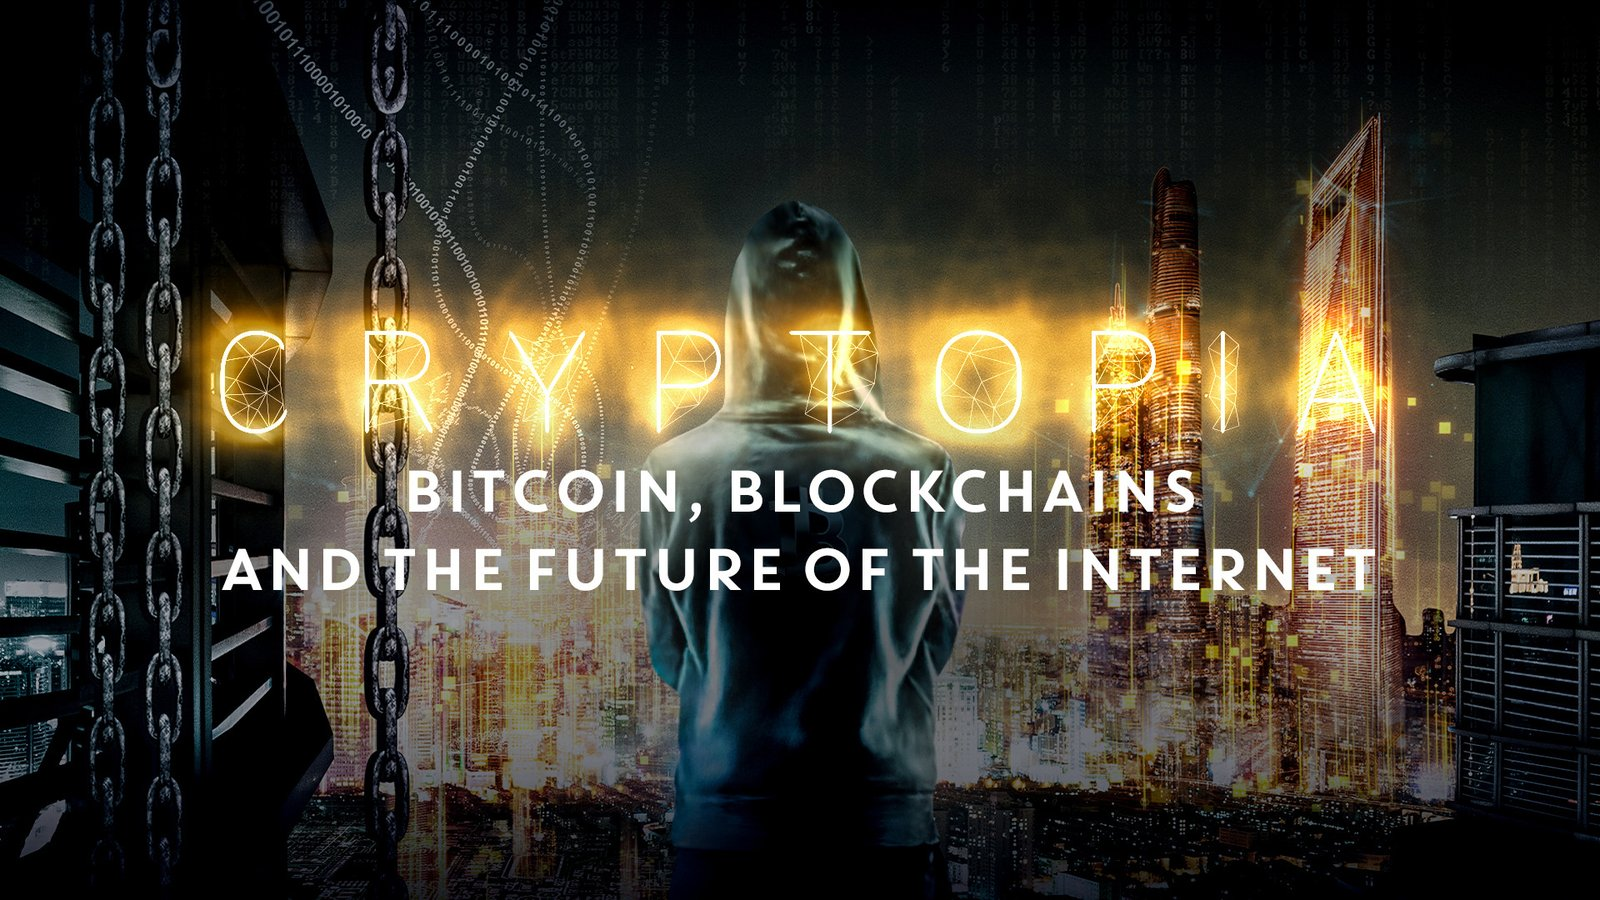 Cryptopia: Bitcoin, Blockchains, and the Future of the Internet